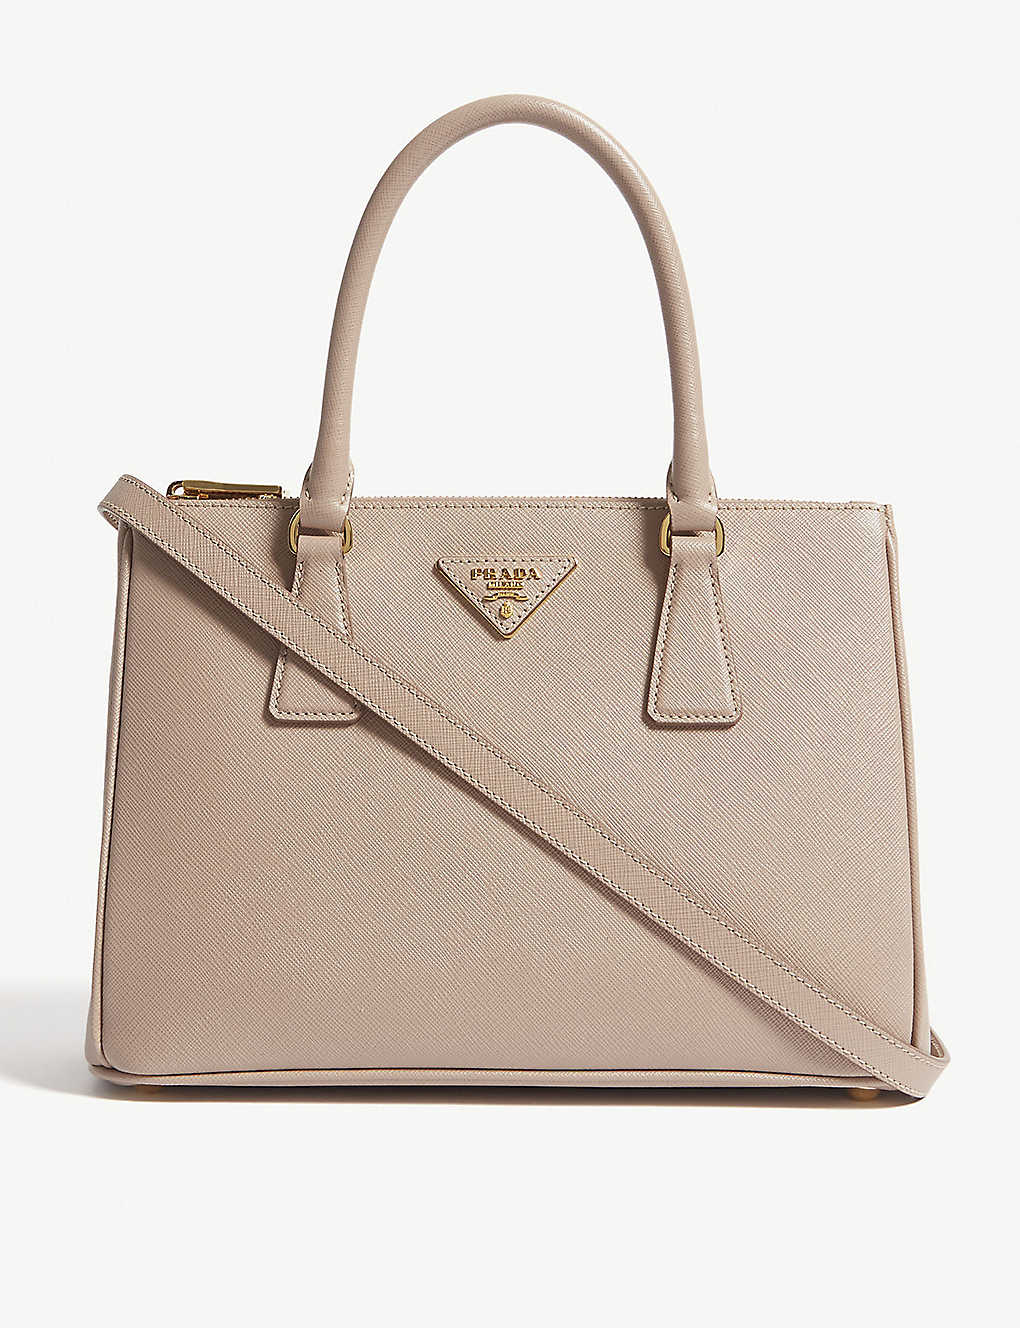 b4d321c2279e53 PRADA - Saffiano leather tote | Selfridges.com